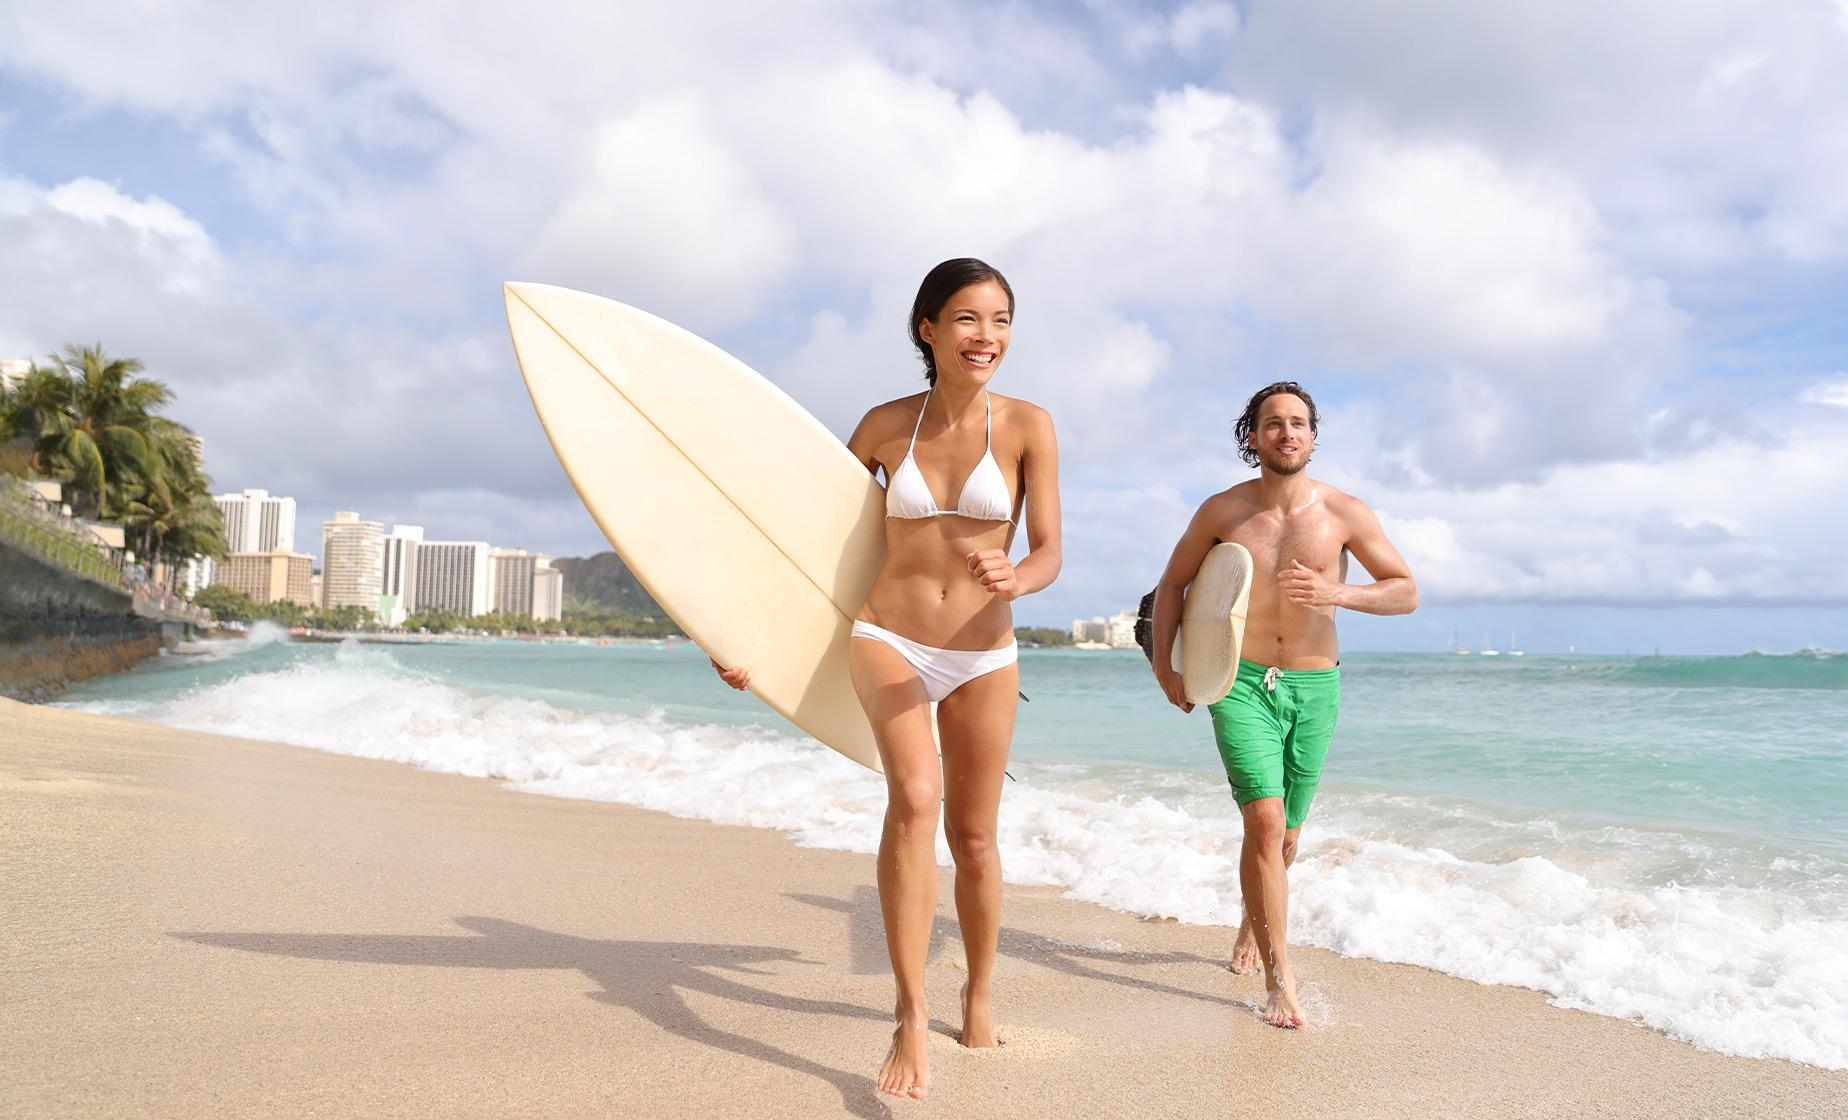 Private Surfing Lesson Tour in Oahu (Waikiki Beach)